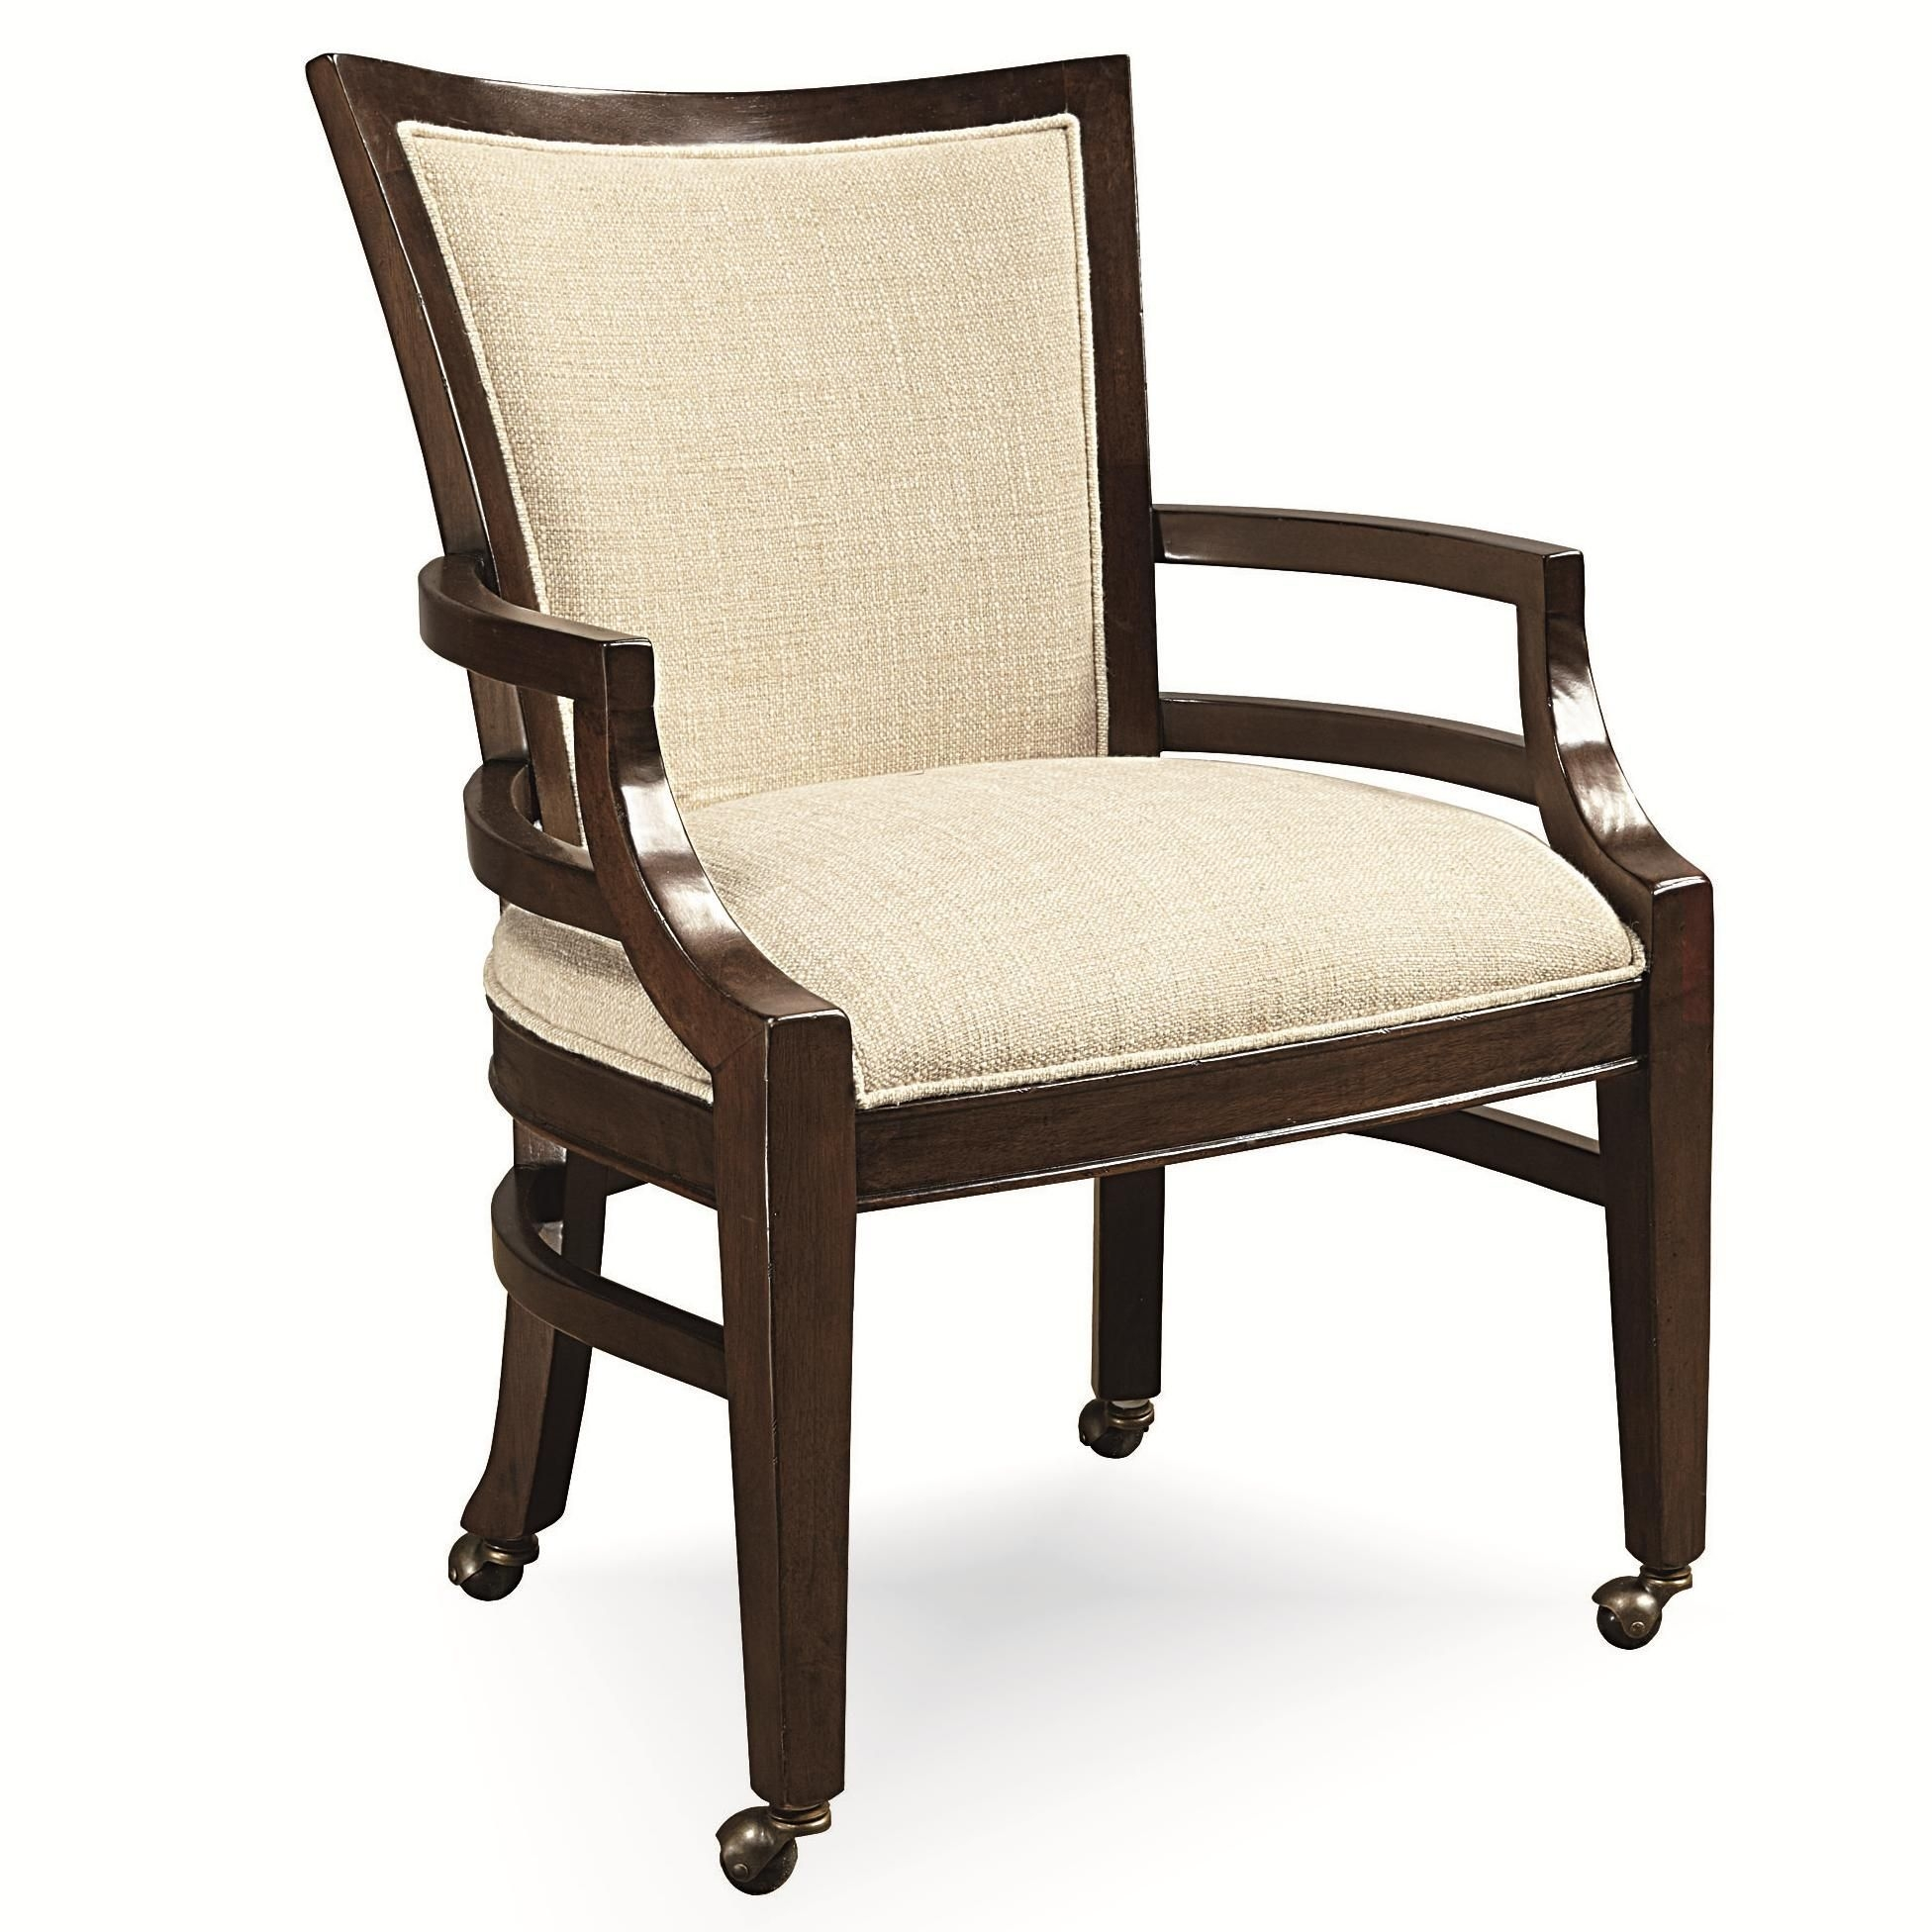 Latitude Dining Chair Wcastersuniversal With Images  Upholstered Dining Chairs Dining